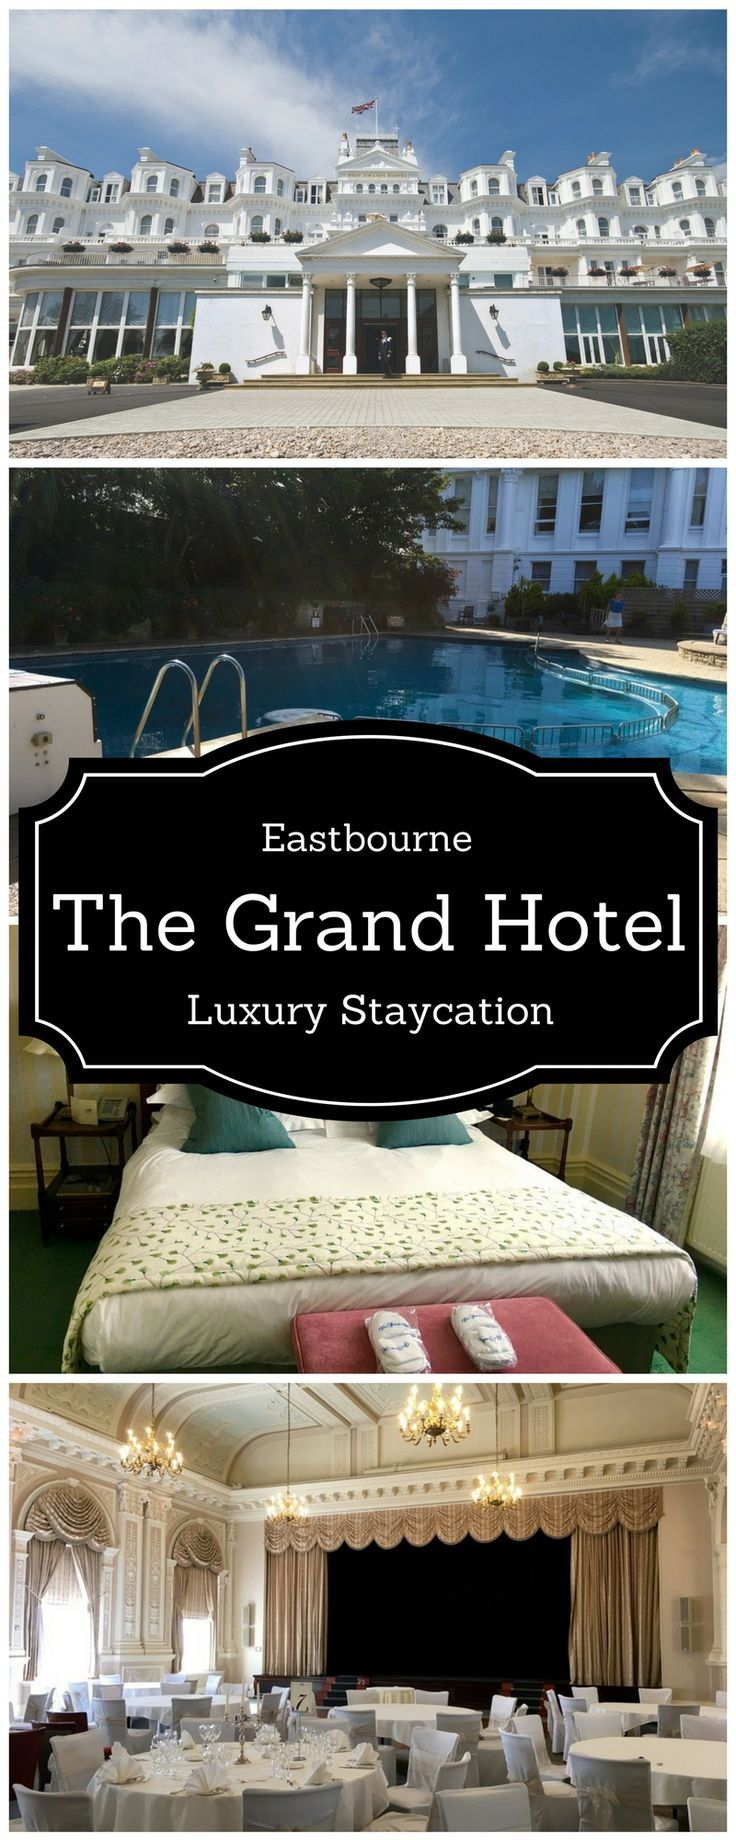 The Grand Hotel Eastbourne Travel Ukluxury